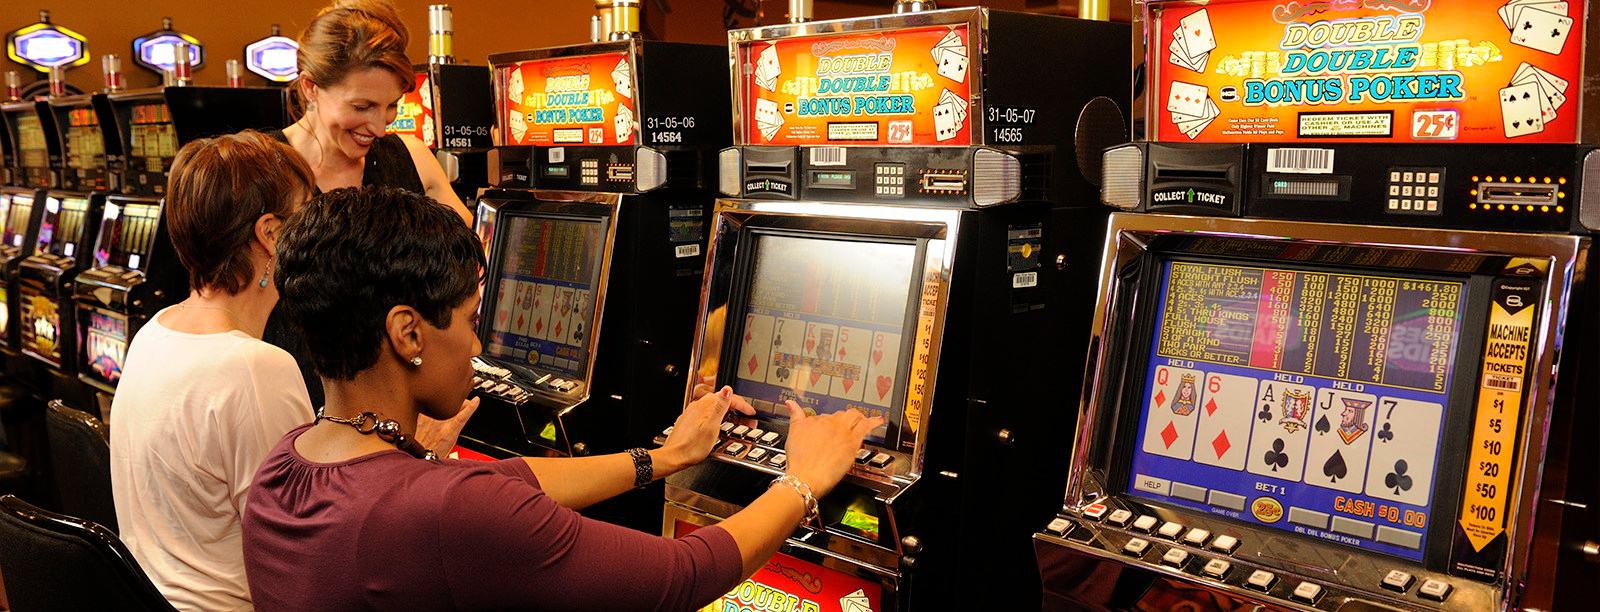 Hollywood Casino Tunica Hotel 29 34  UPDATED 2018